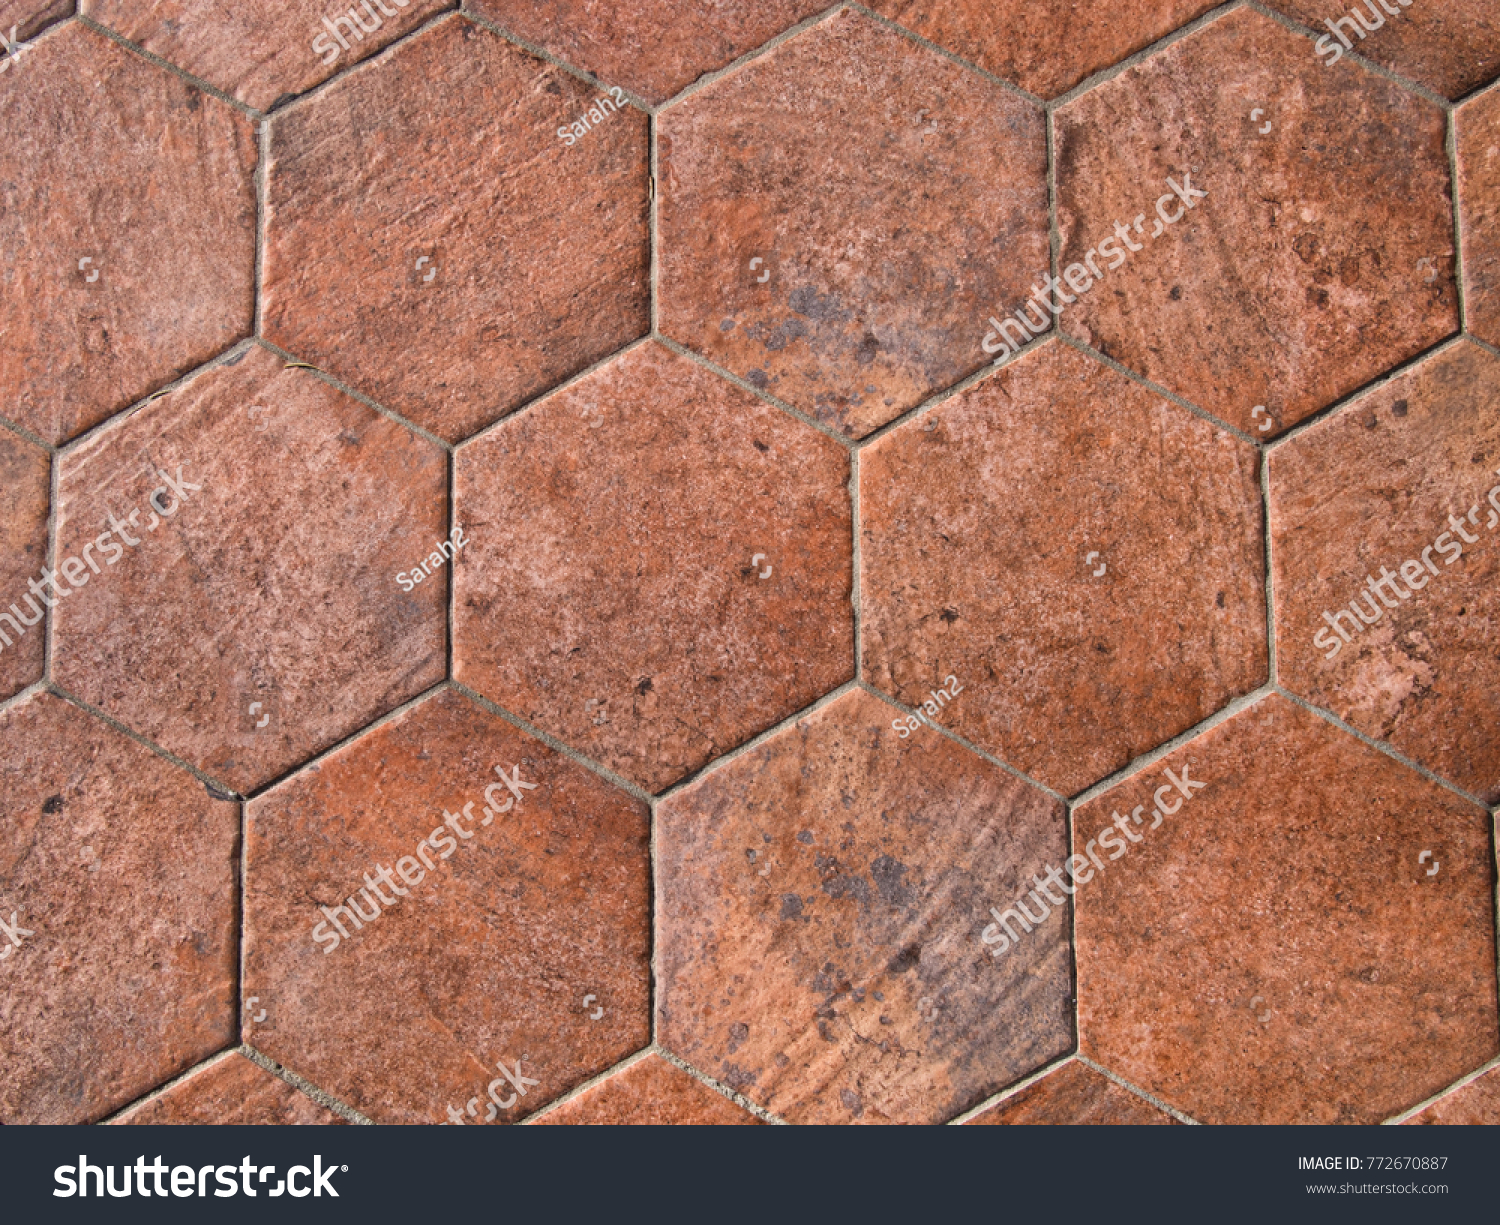 Red brick floor tiles image collections tile flooring design ideas red brick floor tiles gallery tile flooring design ideas vintage italian hexagonal red brick floor stock doublecrazyfo Image collections